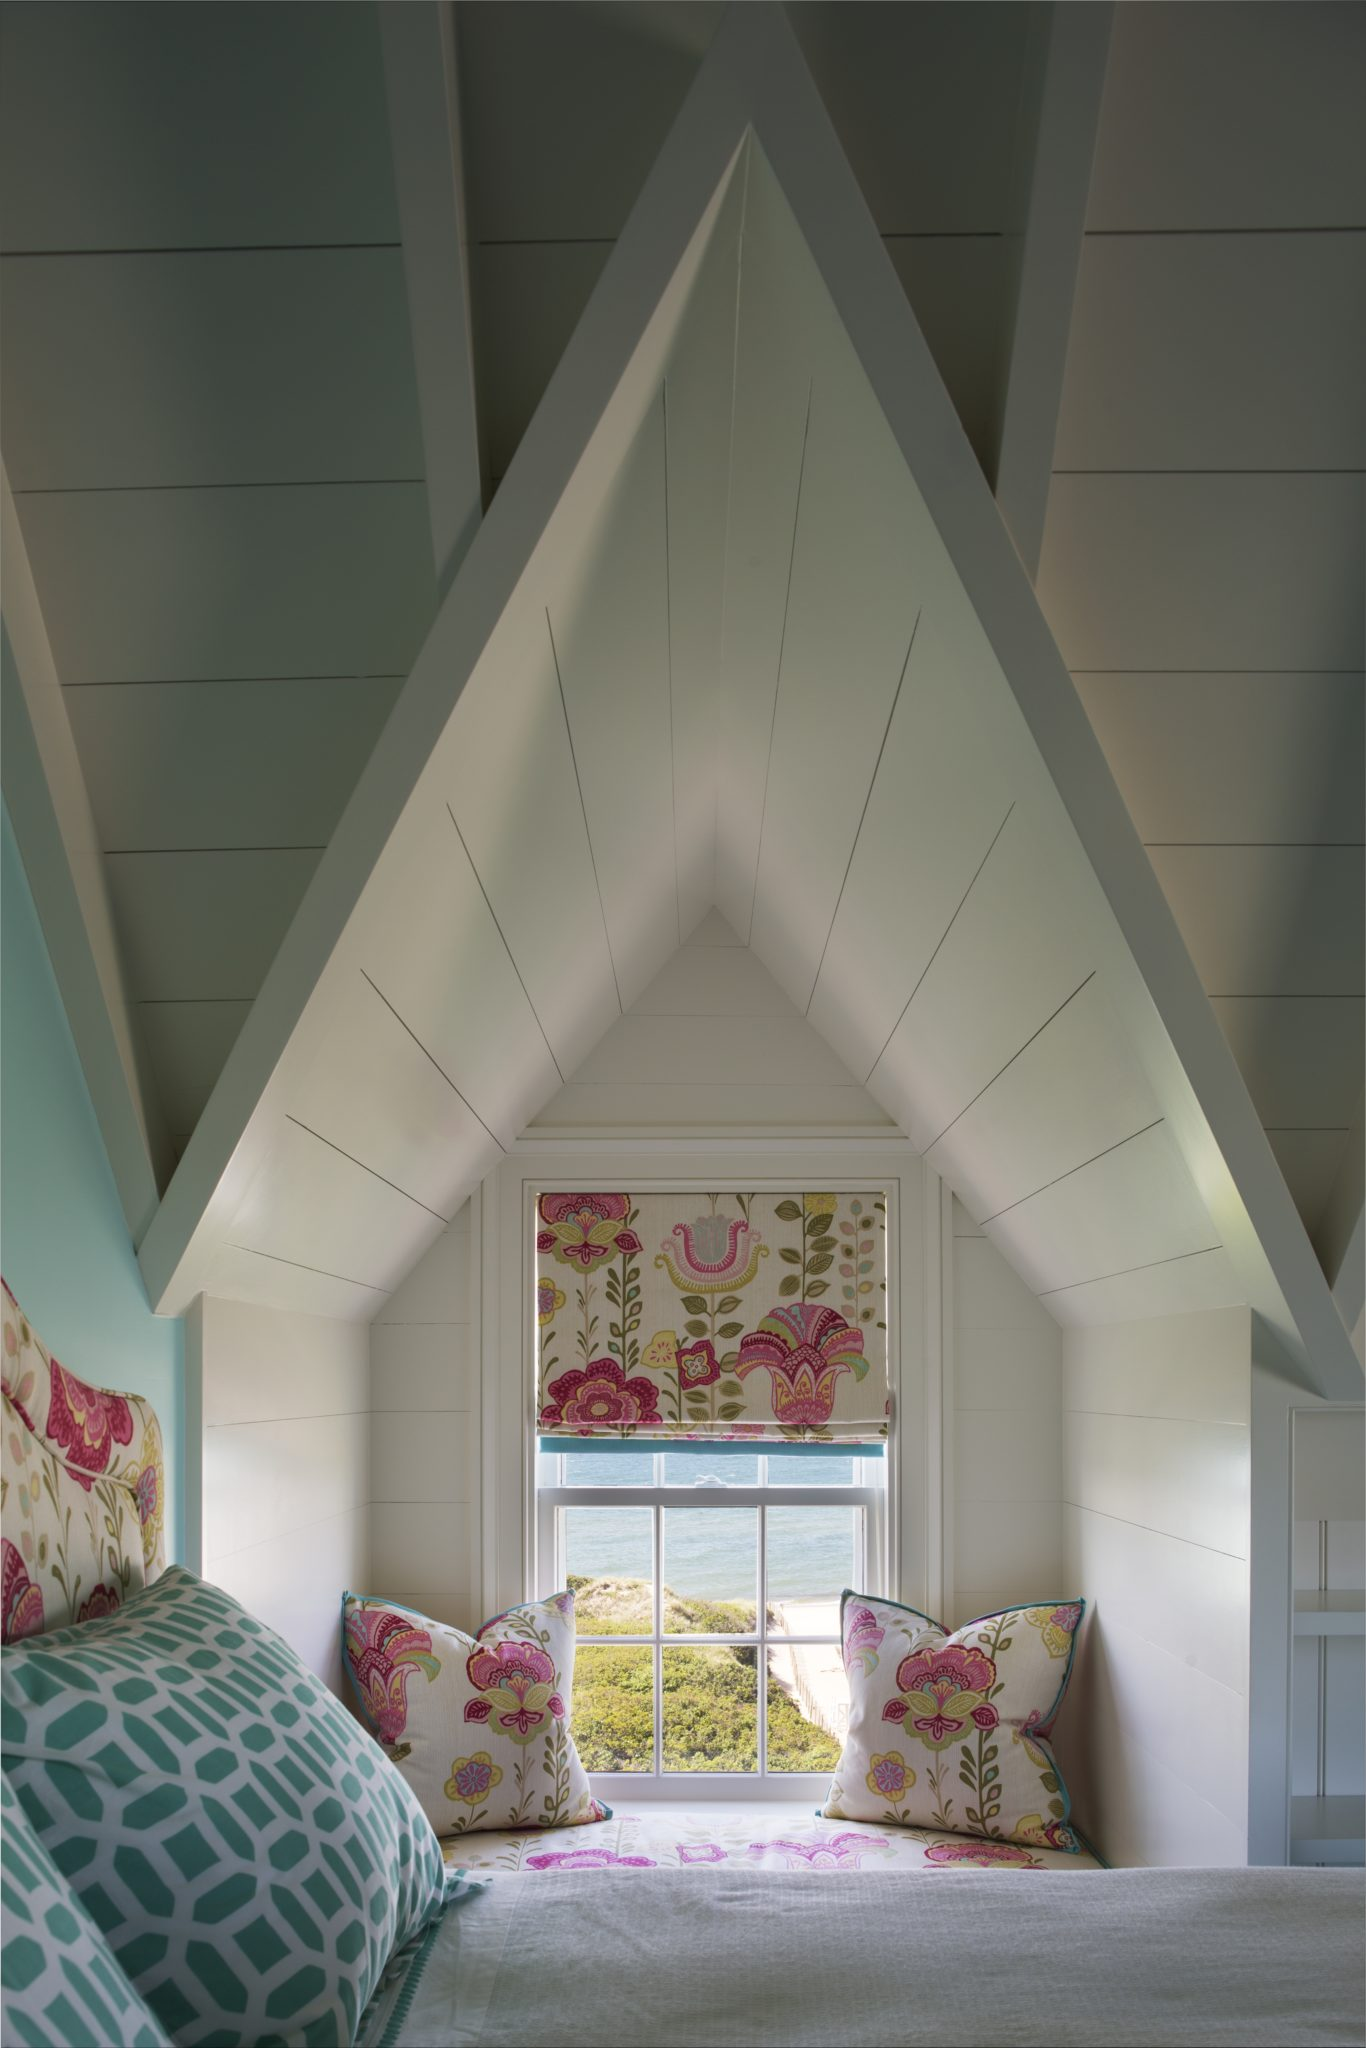 Window seat with pink floral prints, turquoise accents under a vaulted ceiling by SLC Interiors